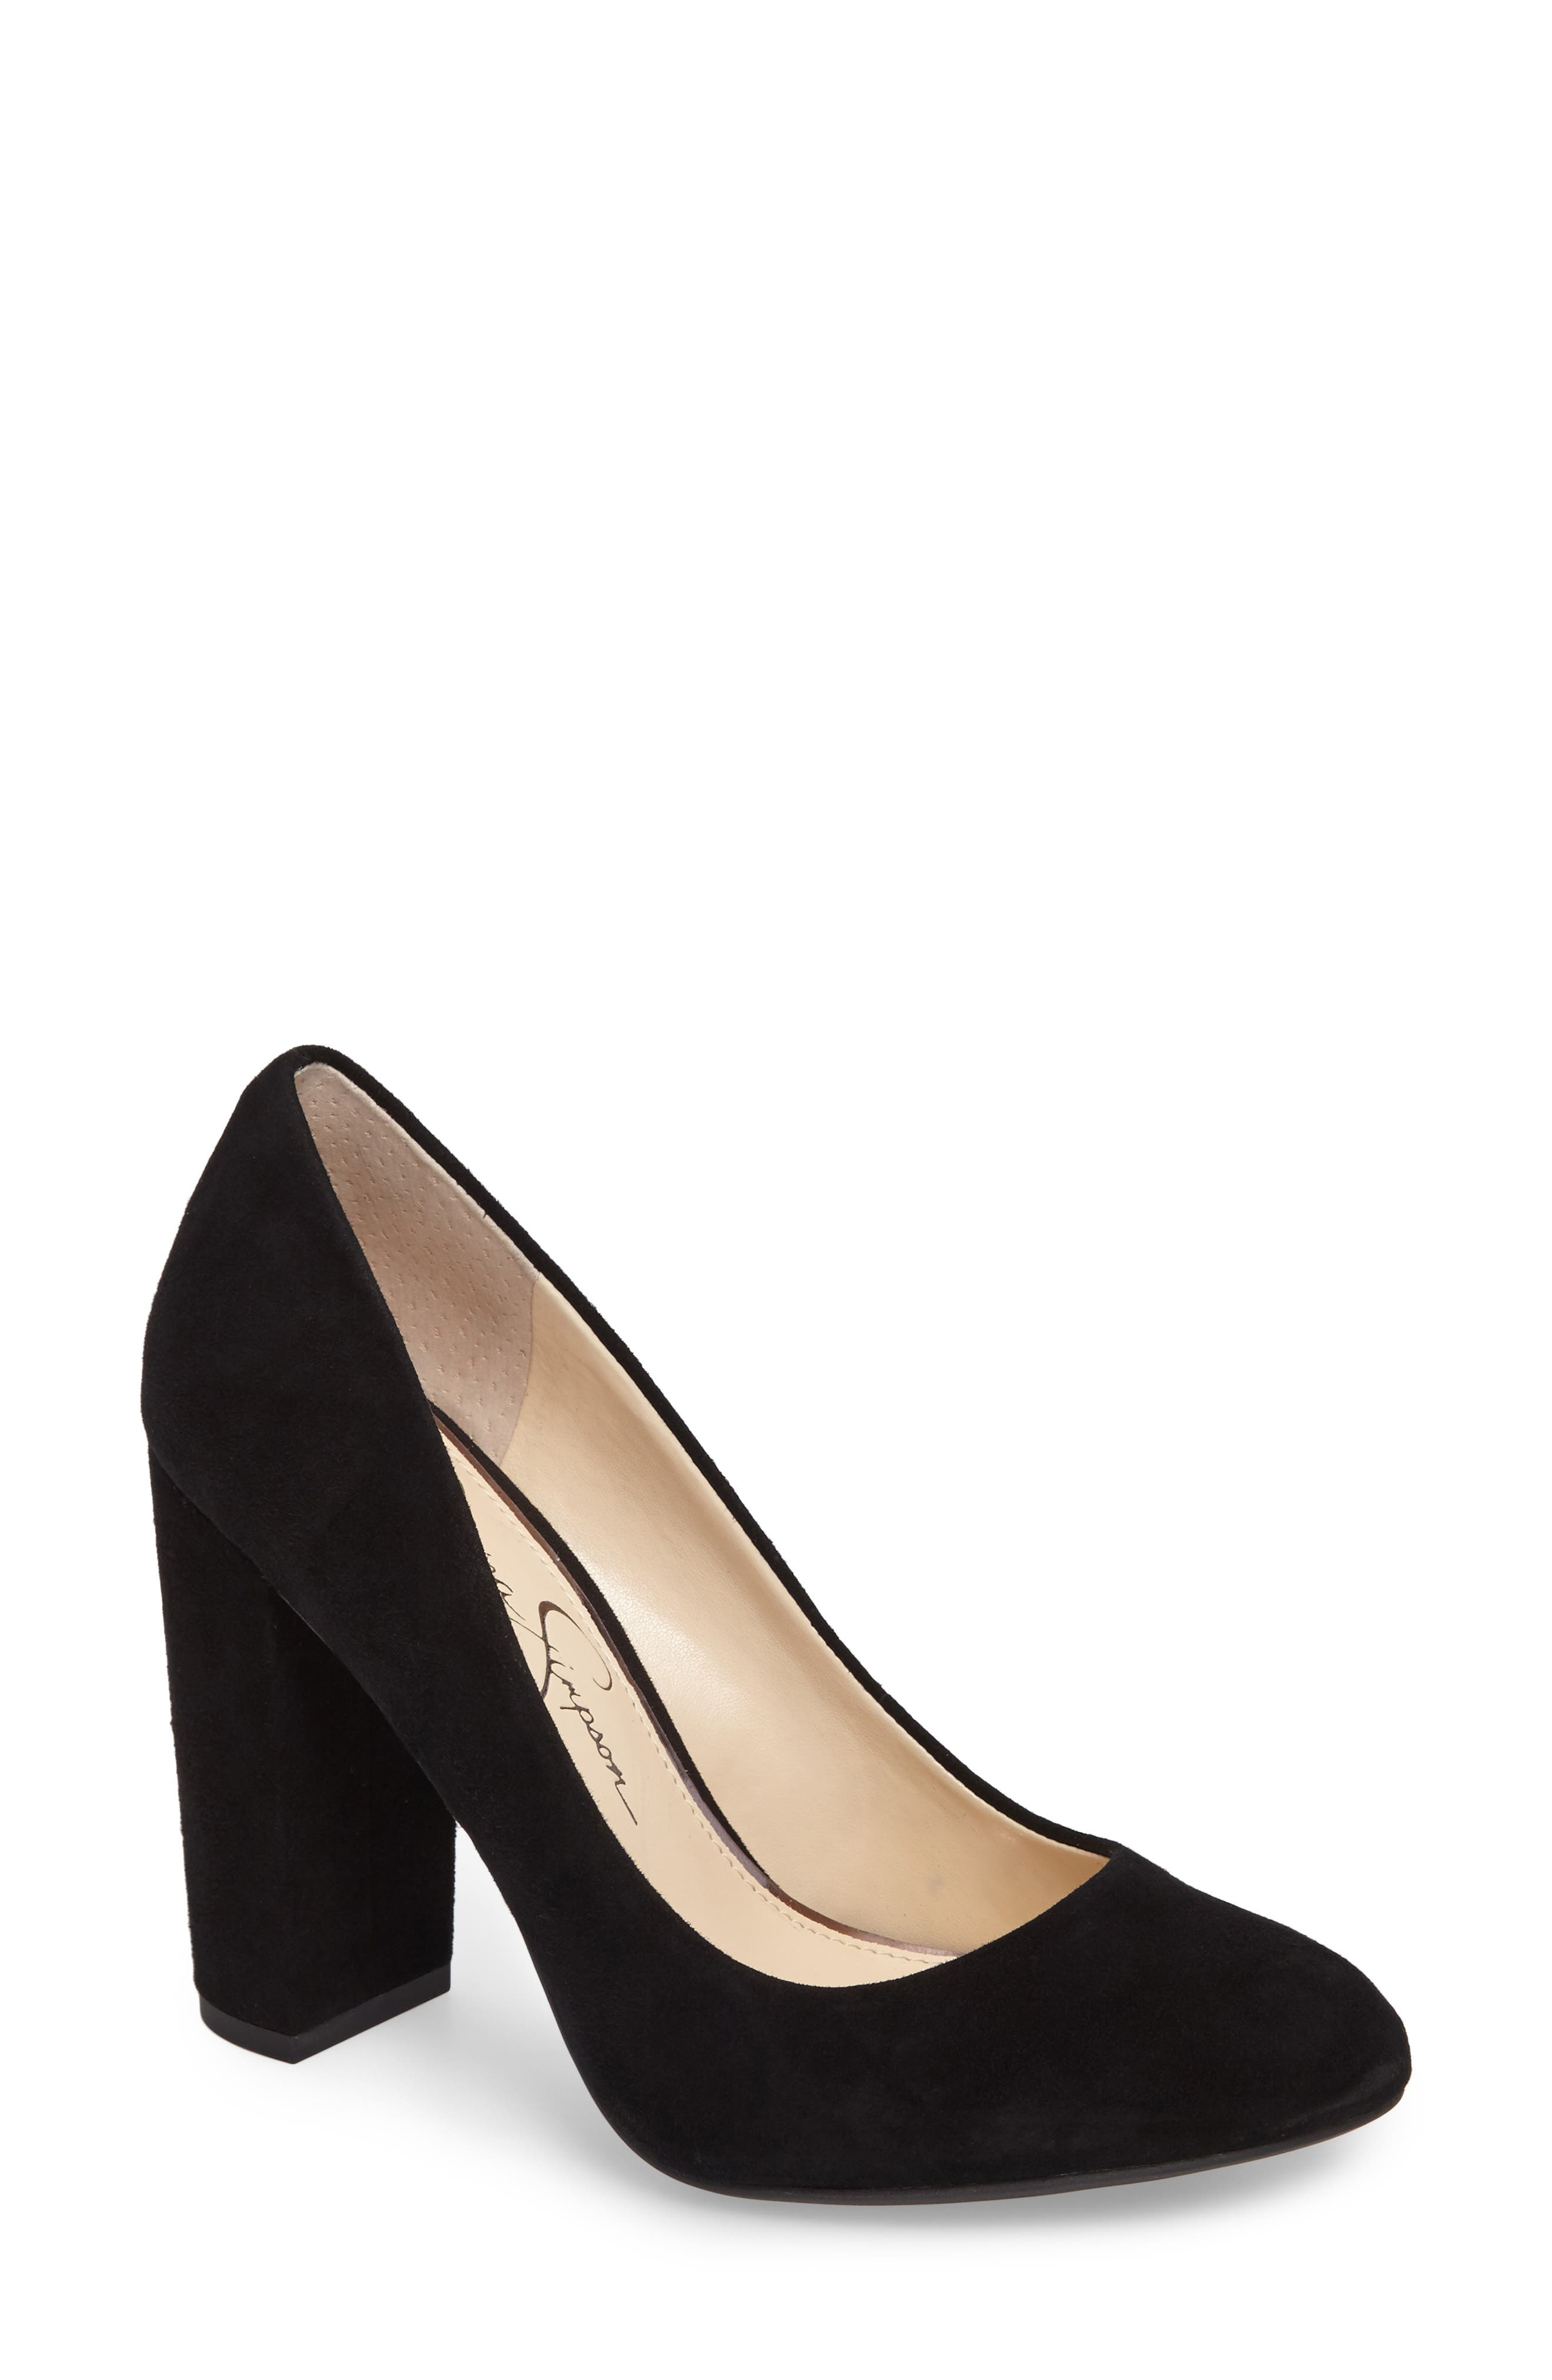 Main Image - Jessica Simpson Belemo Pump (Women)